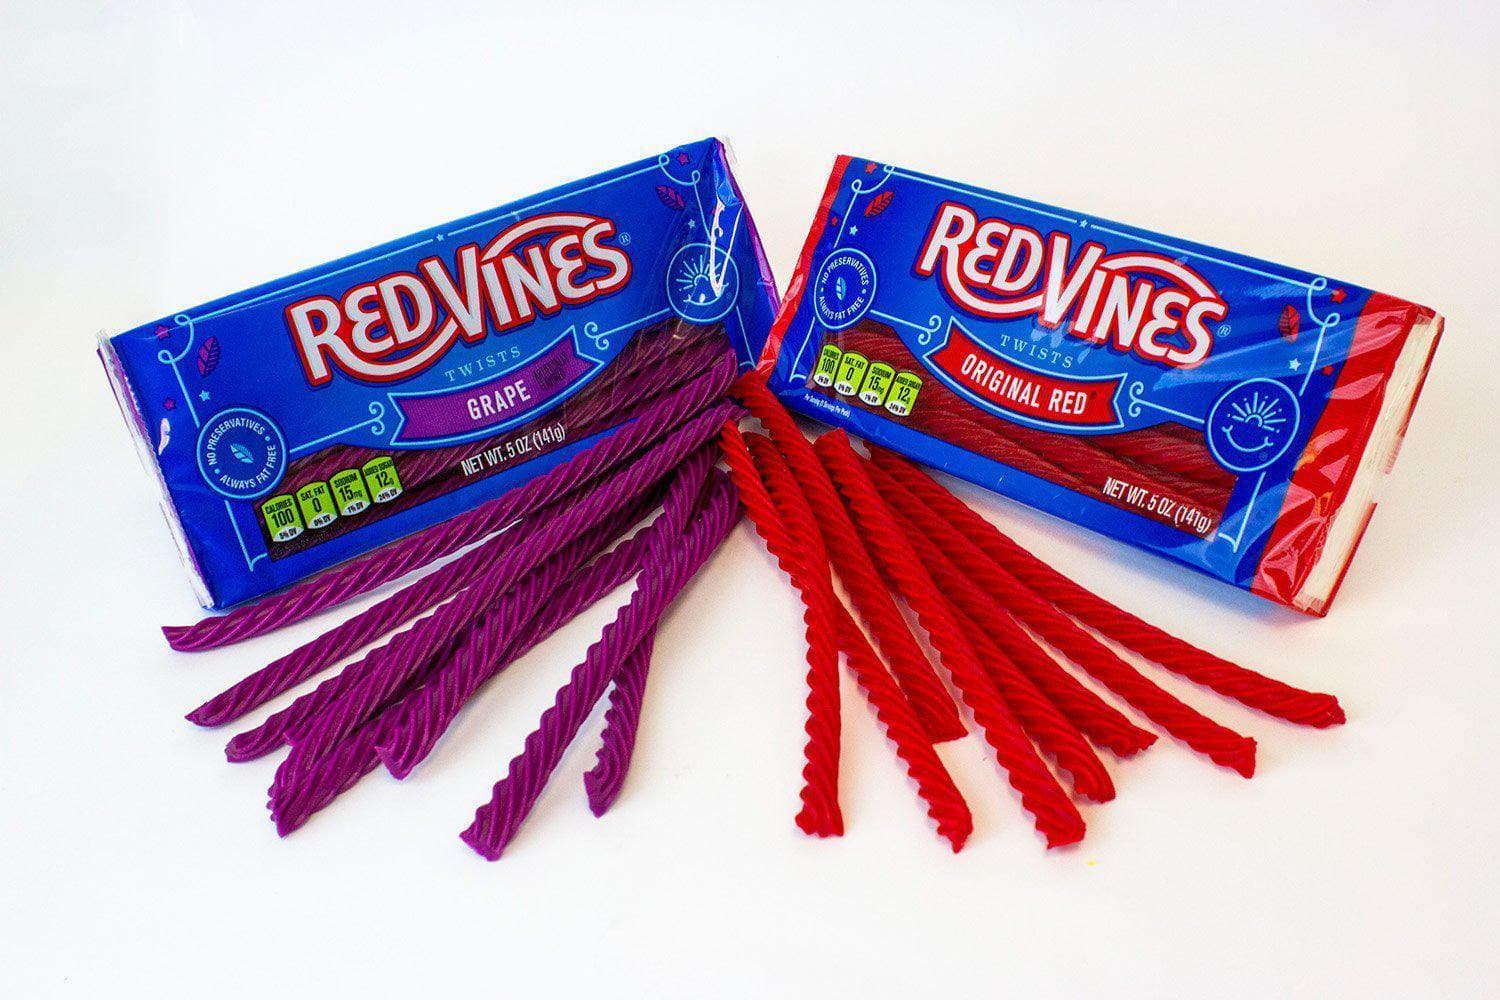 RED VINES Original Red & Grape 4oz Trays